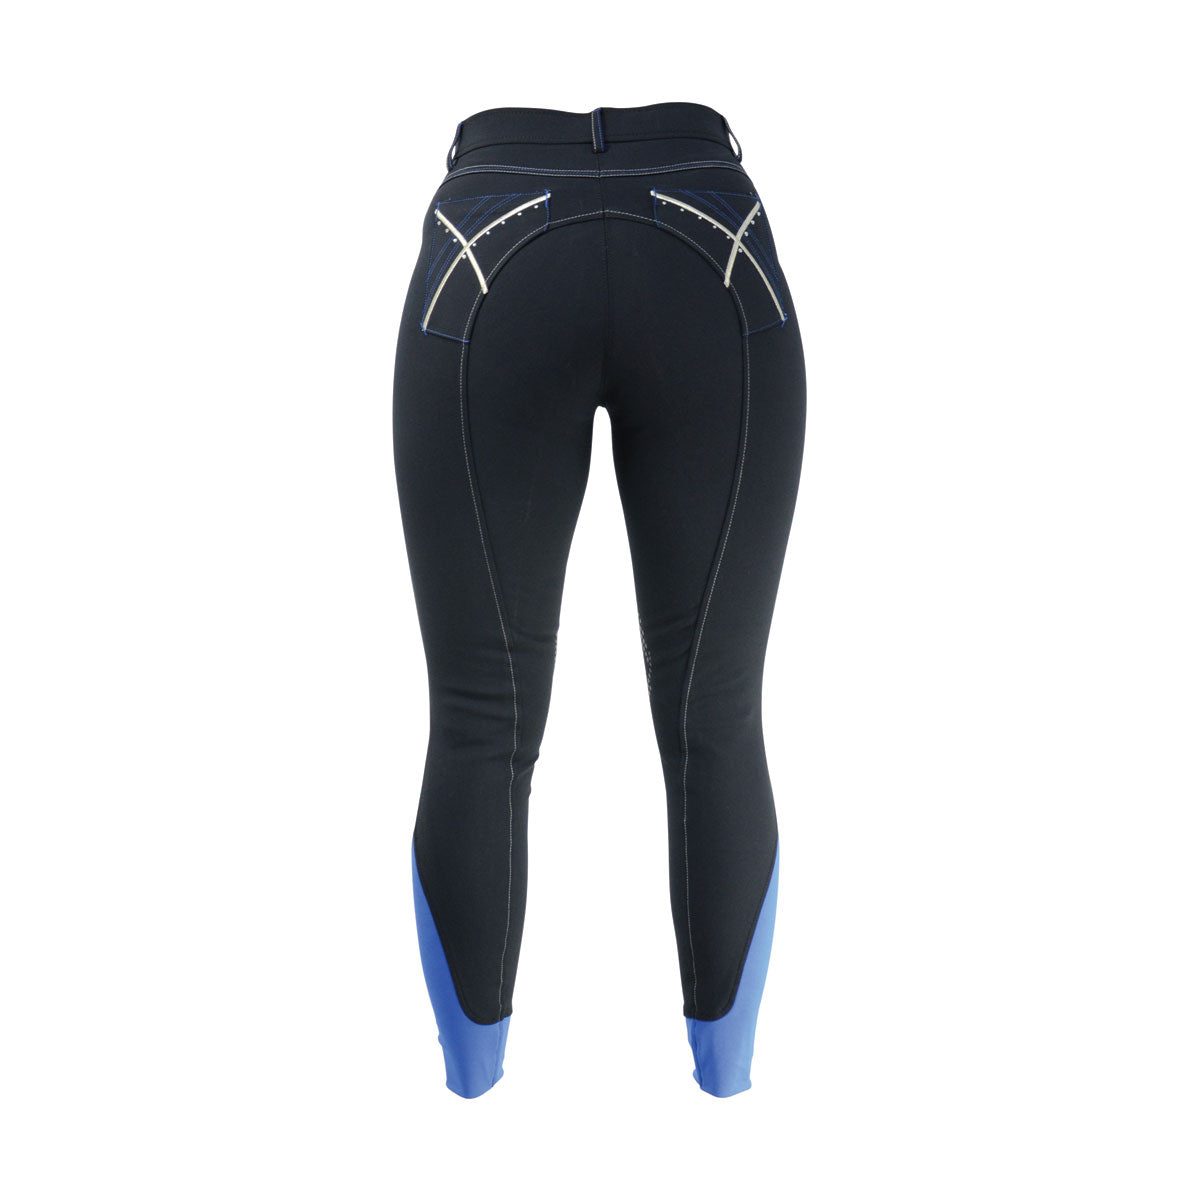 HyPERFORMANCE Olympian Ladies Breeches